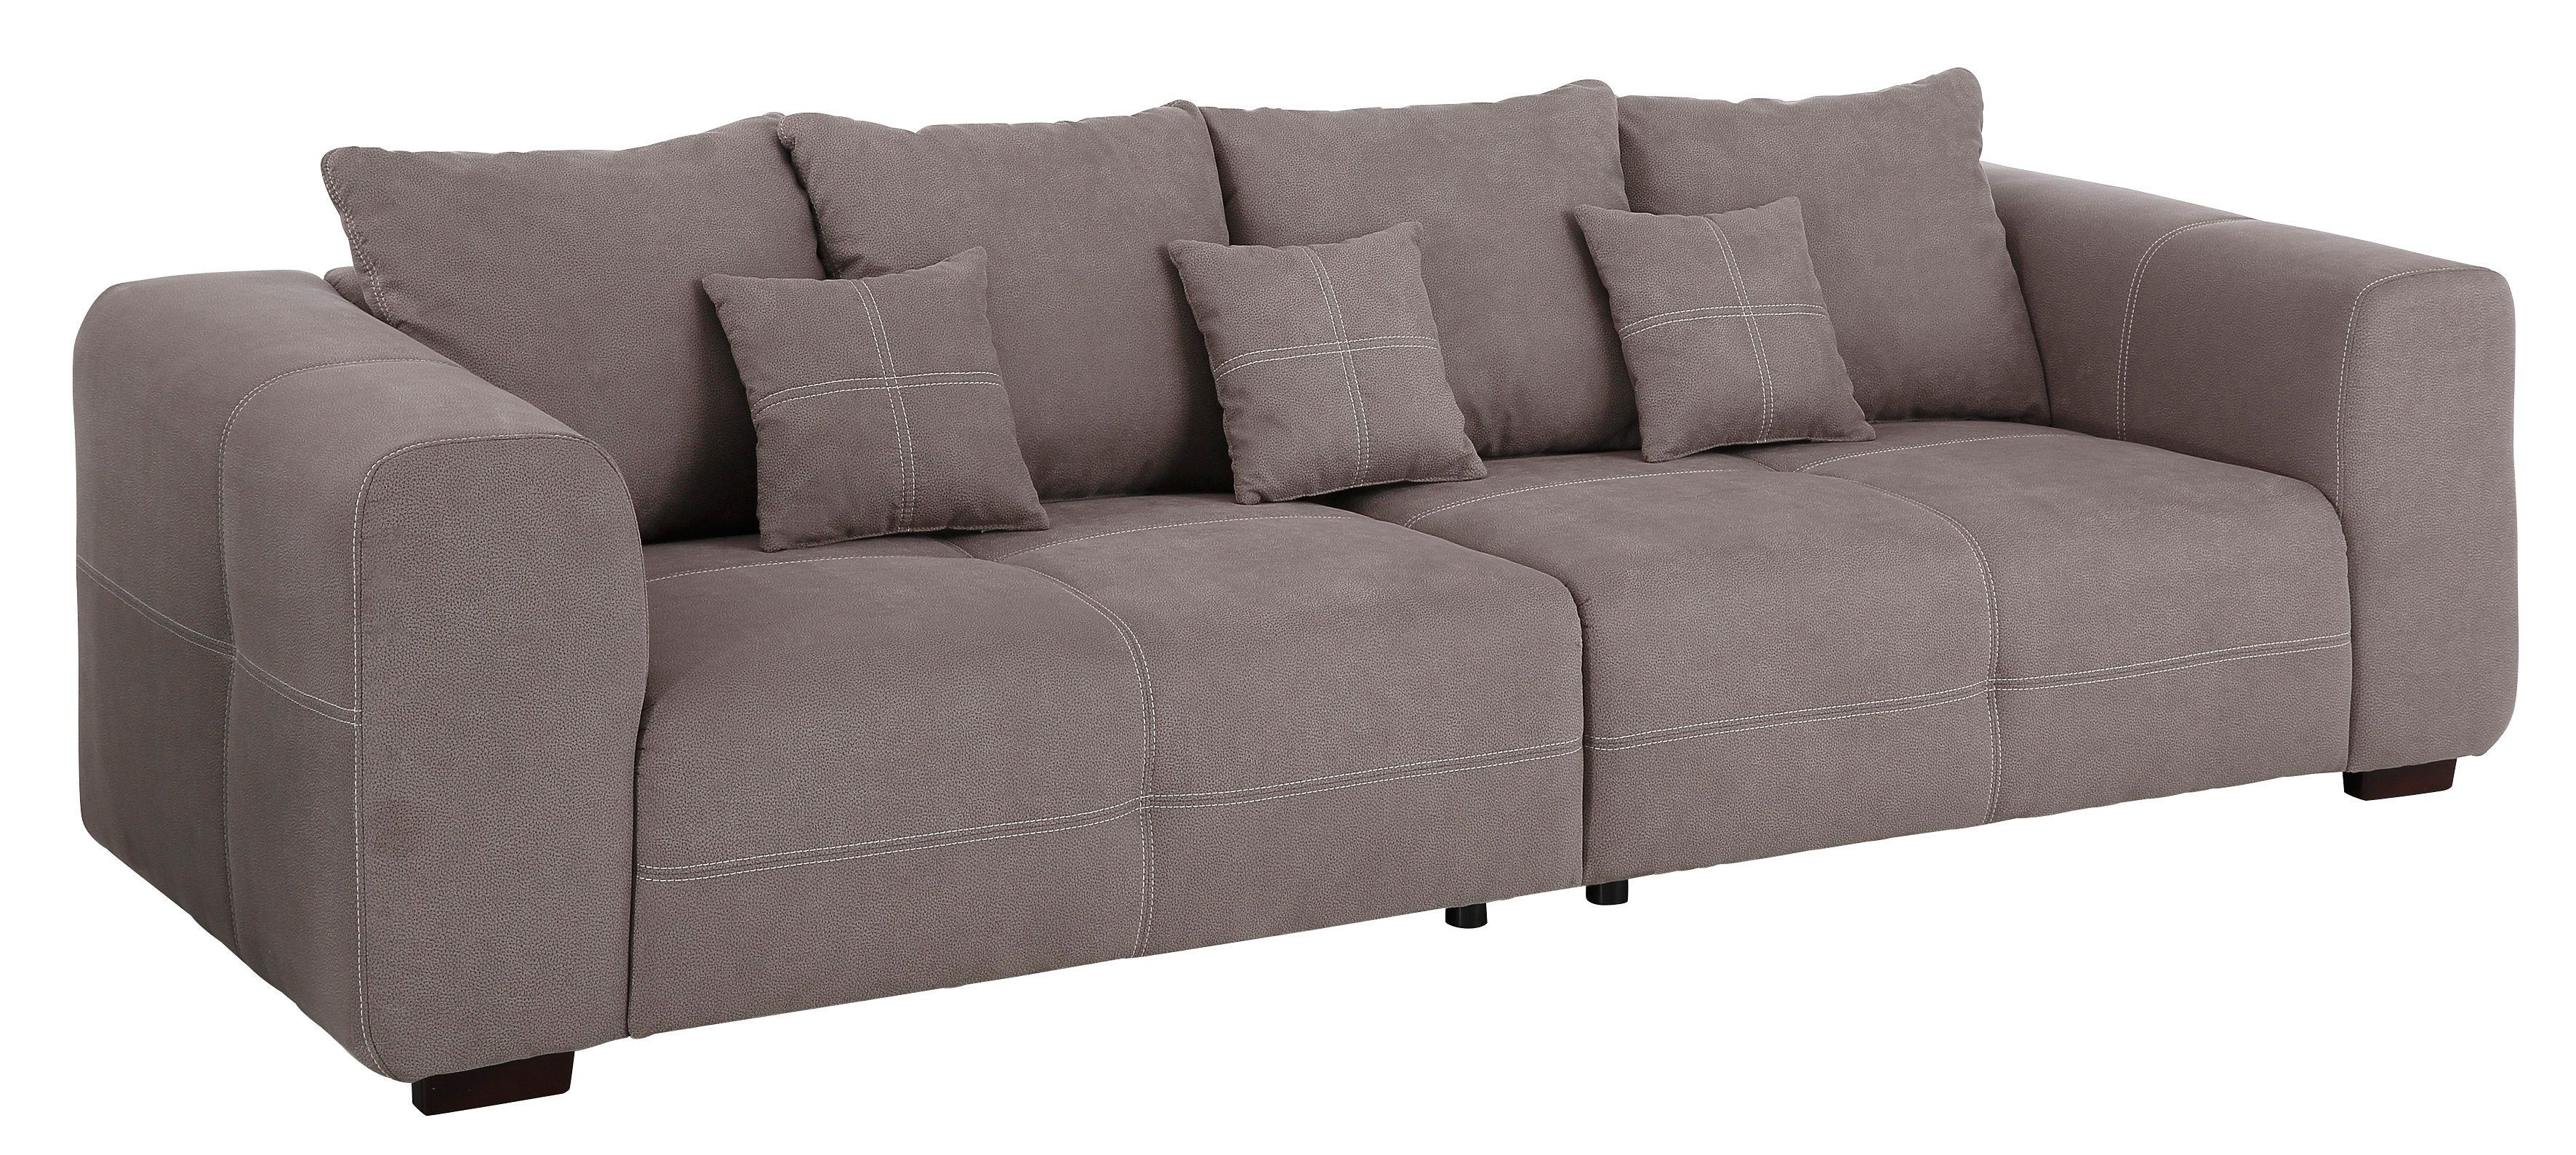 Malerisch Big Sofa Grau Foto Von Premium Collection By Home Affaire Big-sofa »maverick«